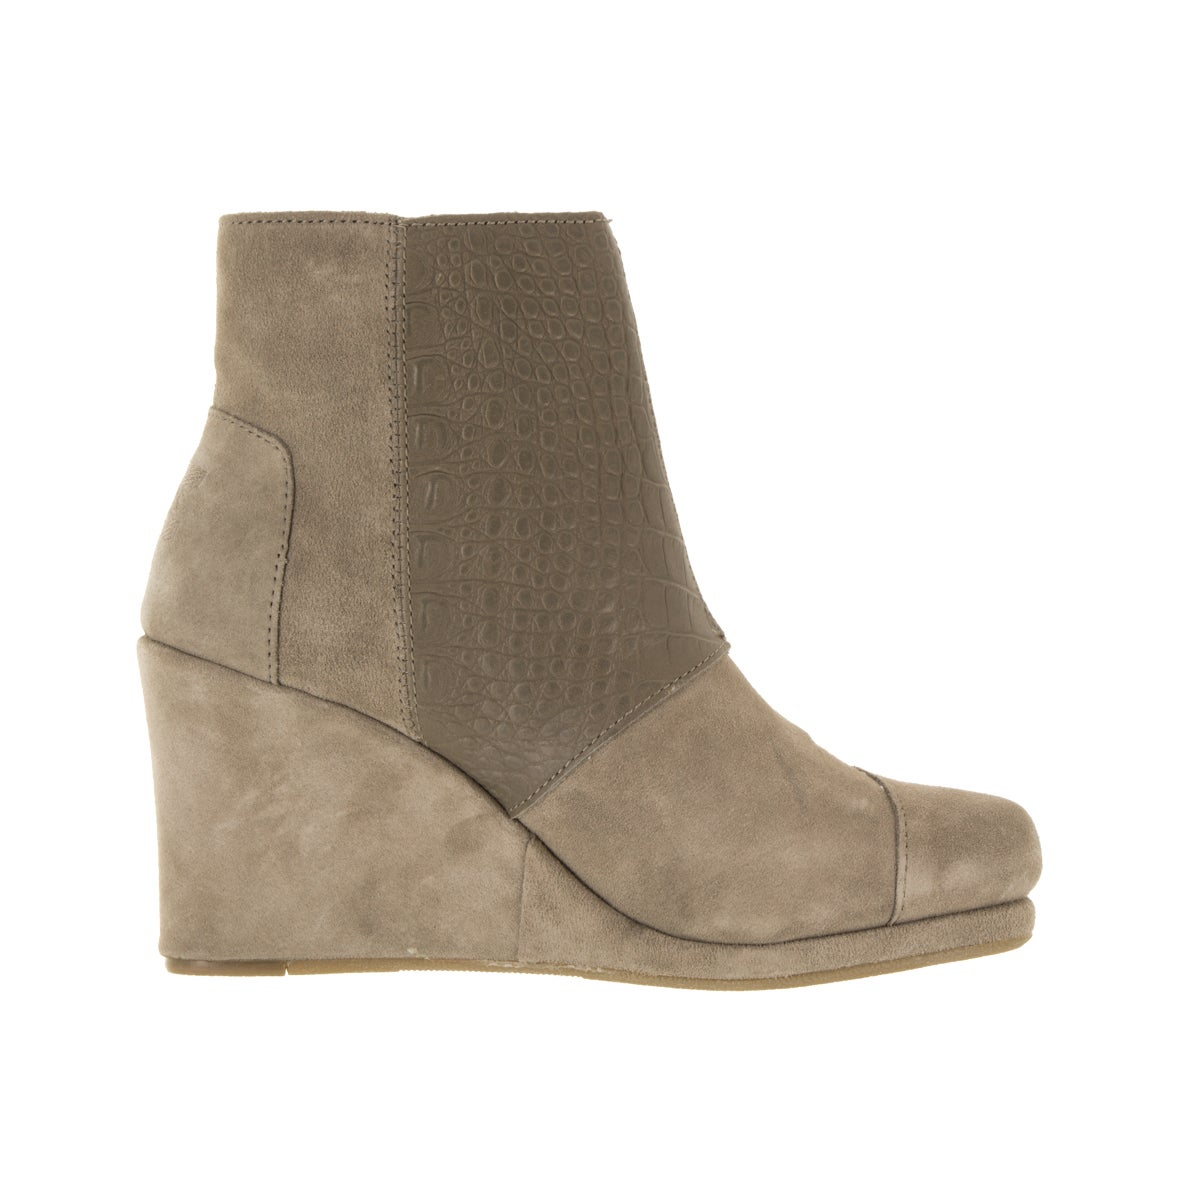 1a65a68f78c Shop Toms Women s Desert Wedge High Taupe Suede Croc Boot - Free Shipping  Today - Overstock - 12344761